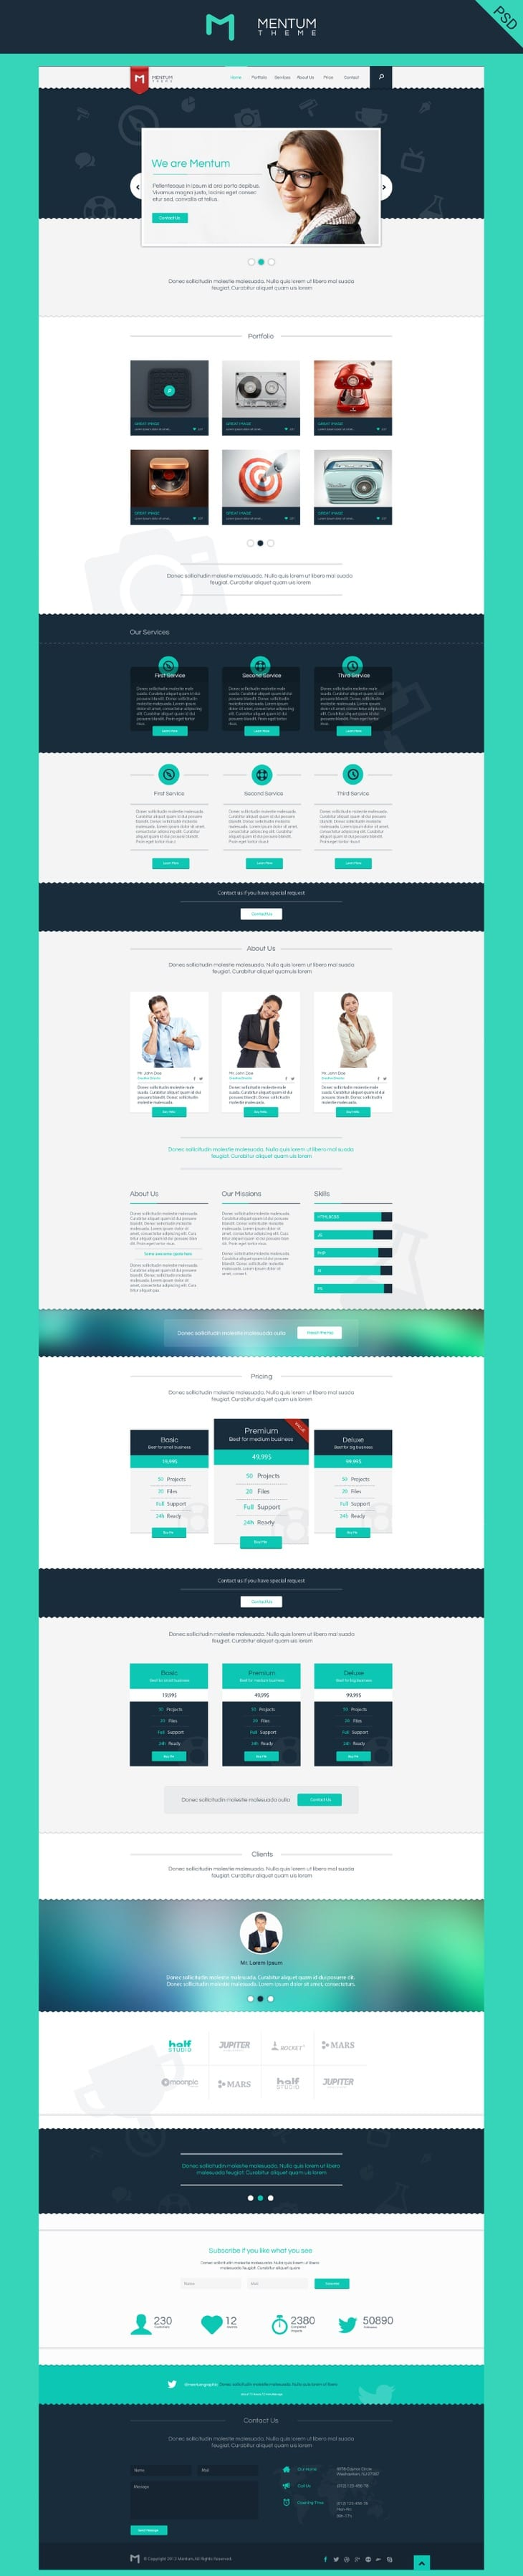 Mentum - Single Page Template PSD